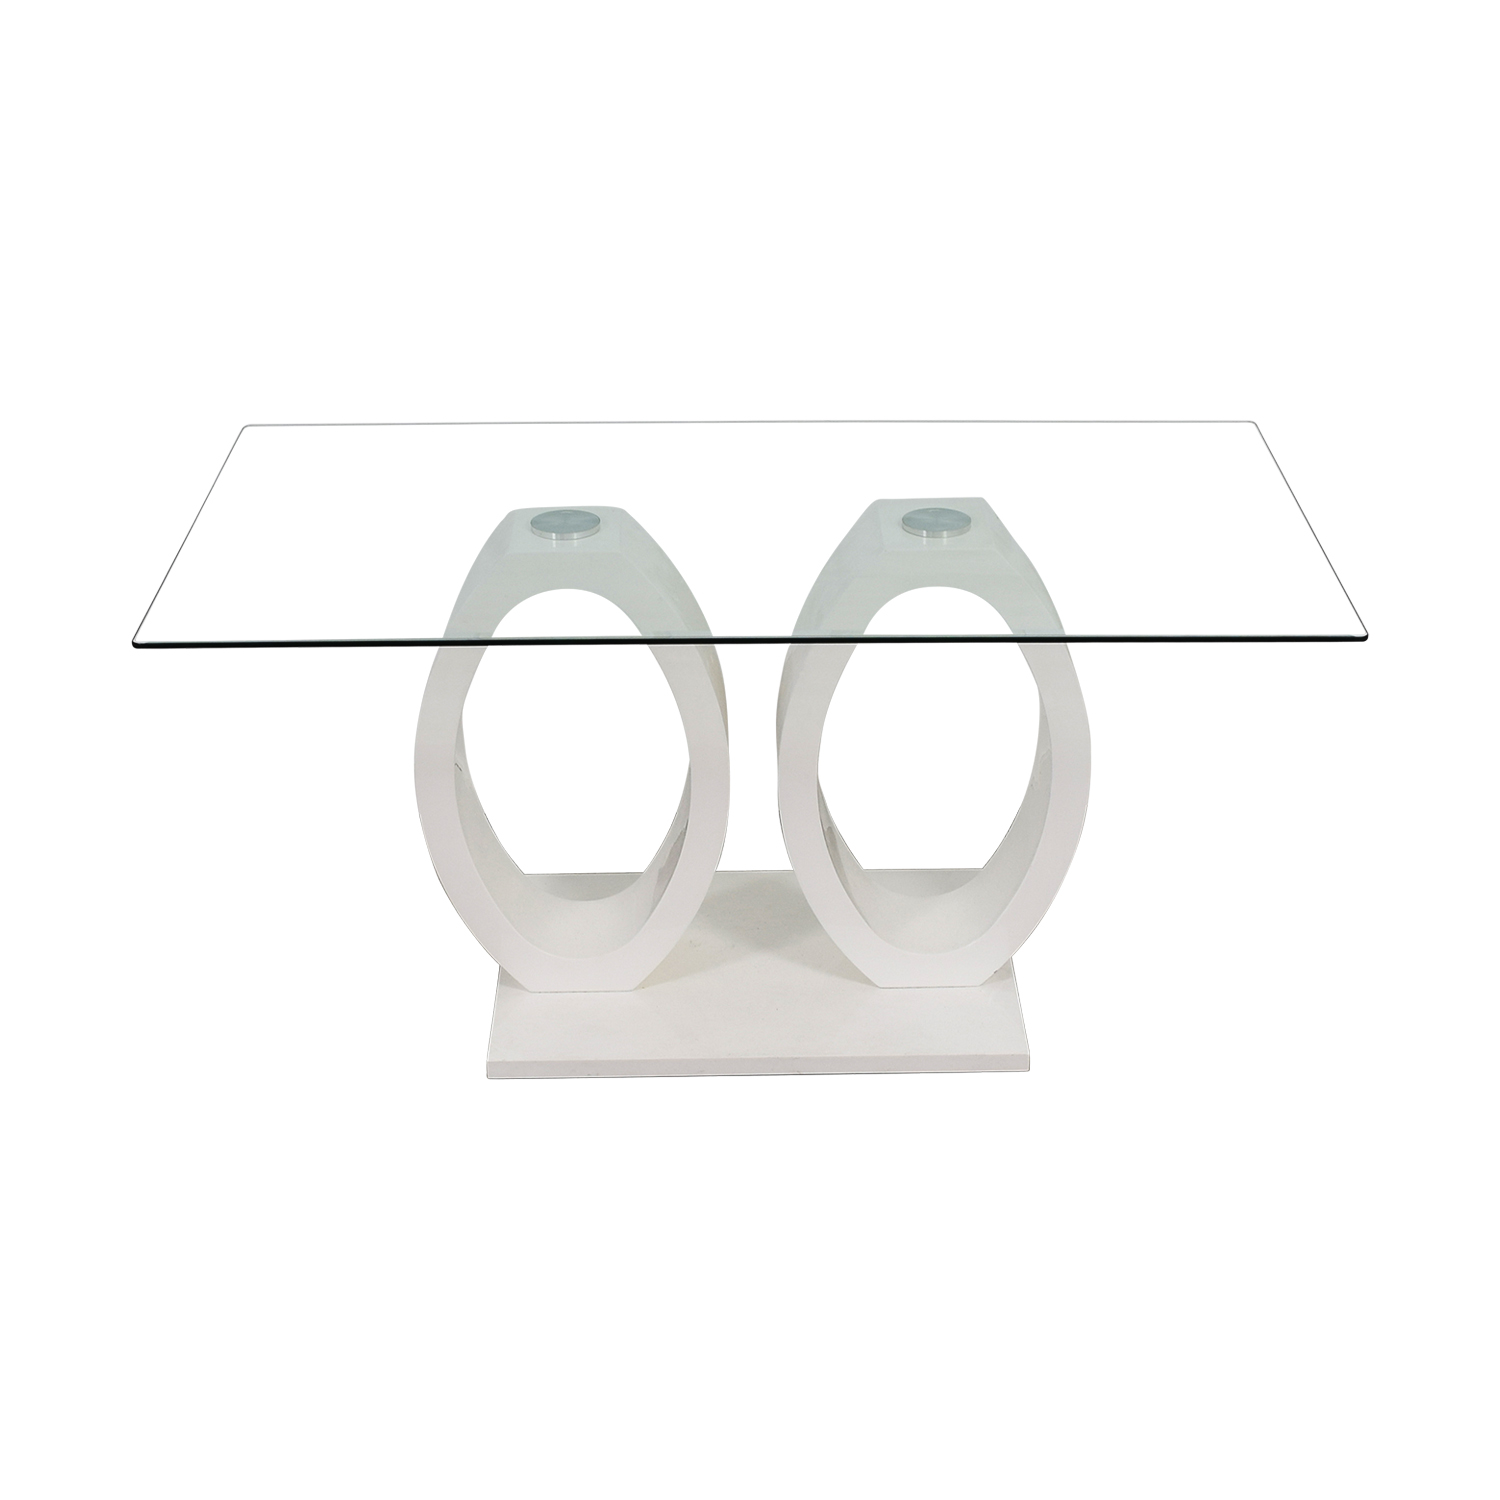 White Oval Rings and Rectangular Glass Contemporary Table for sale